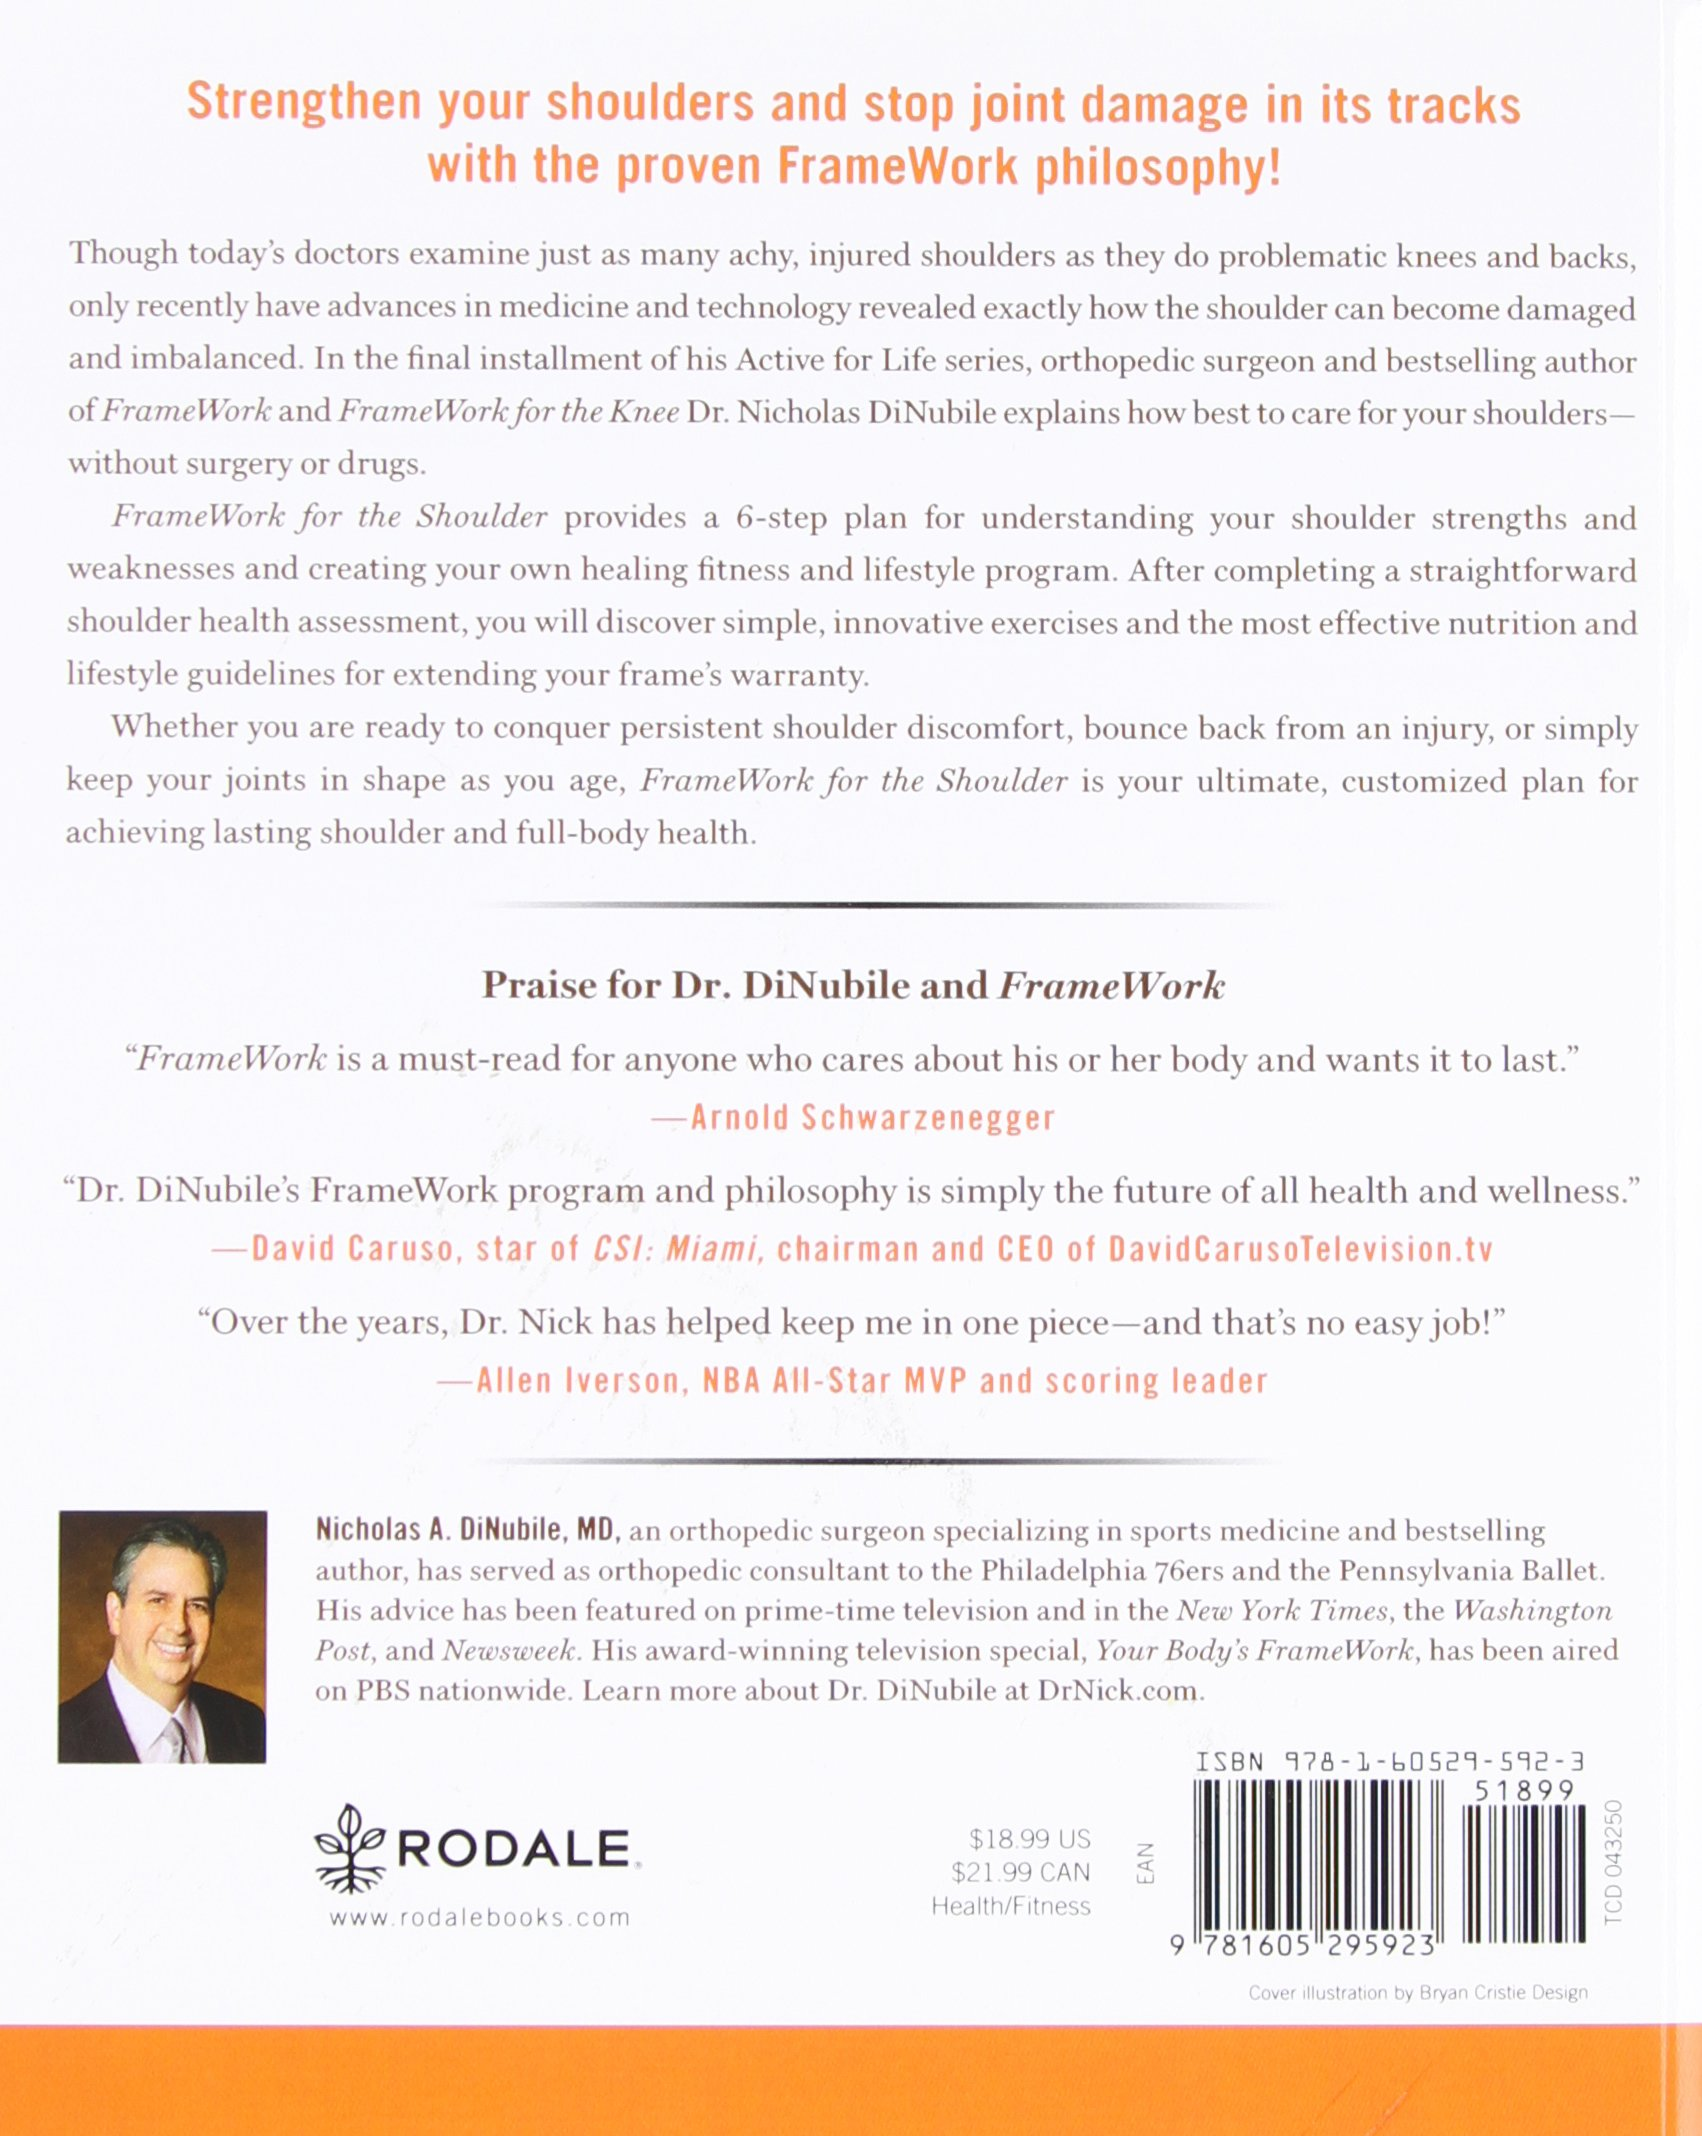 framework for the shoulder a step plan for preventing injury framework for the shoulder a 6 step plan for preventing injury and ending pain nicholas a dinubile md bruce scali 9781605295923 com books